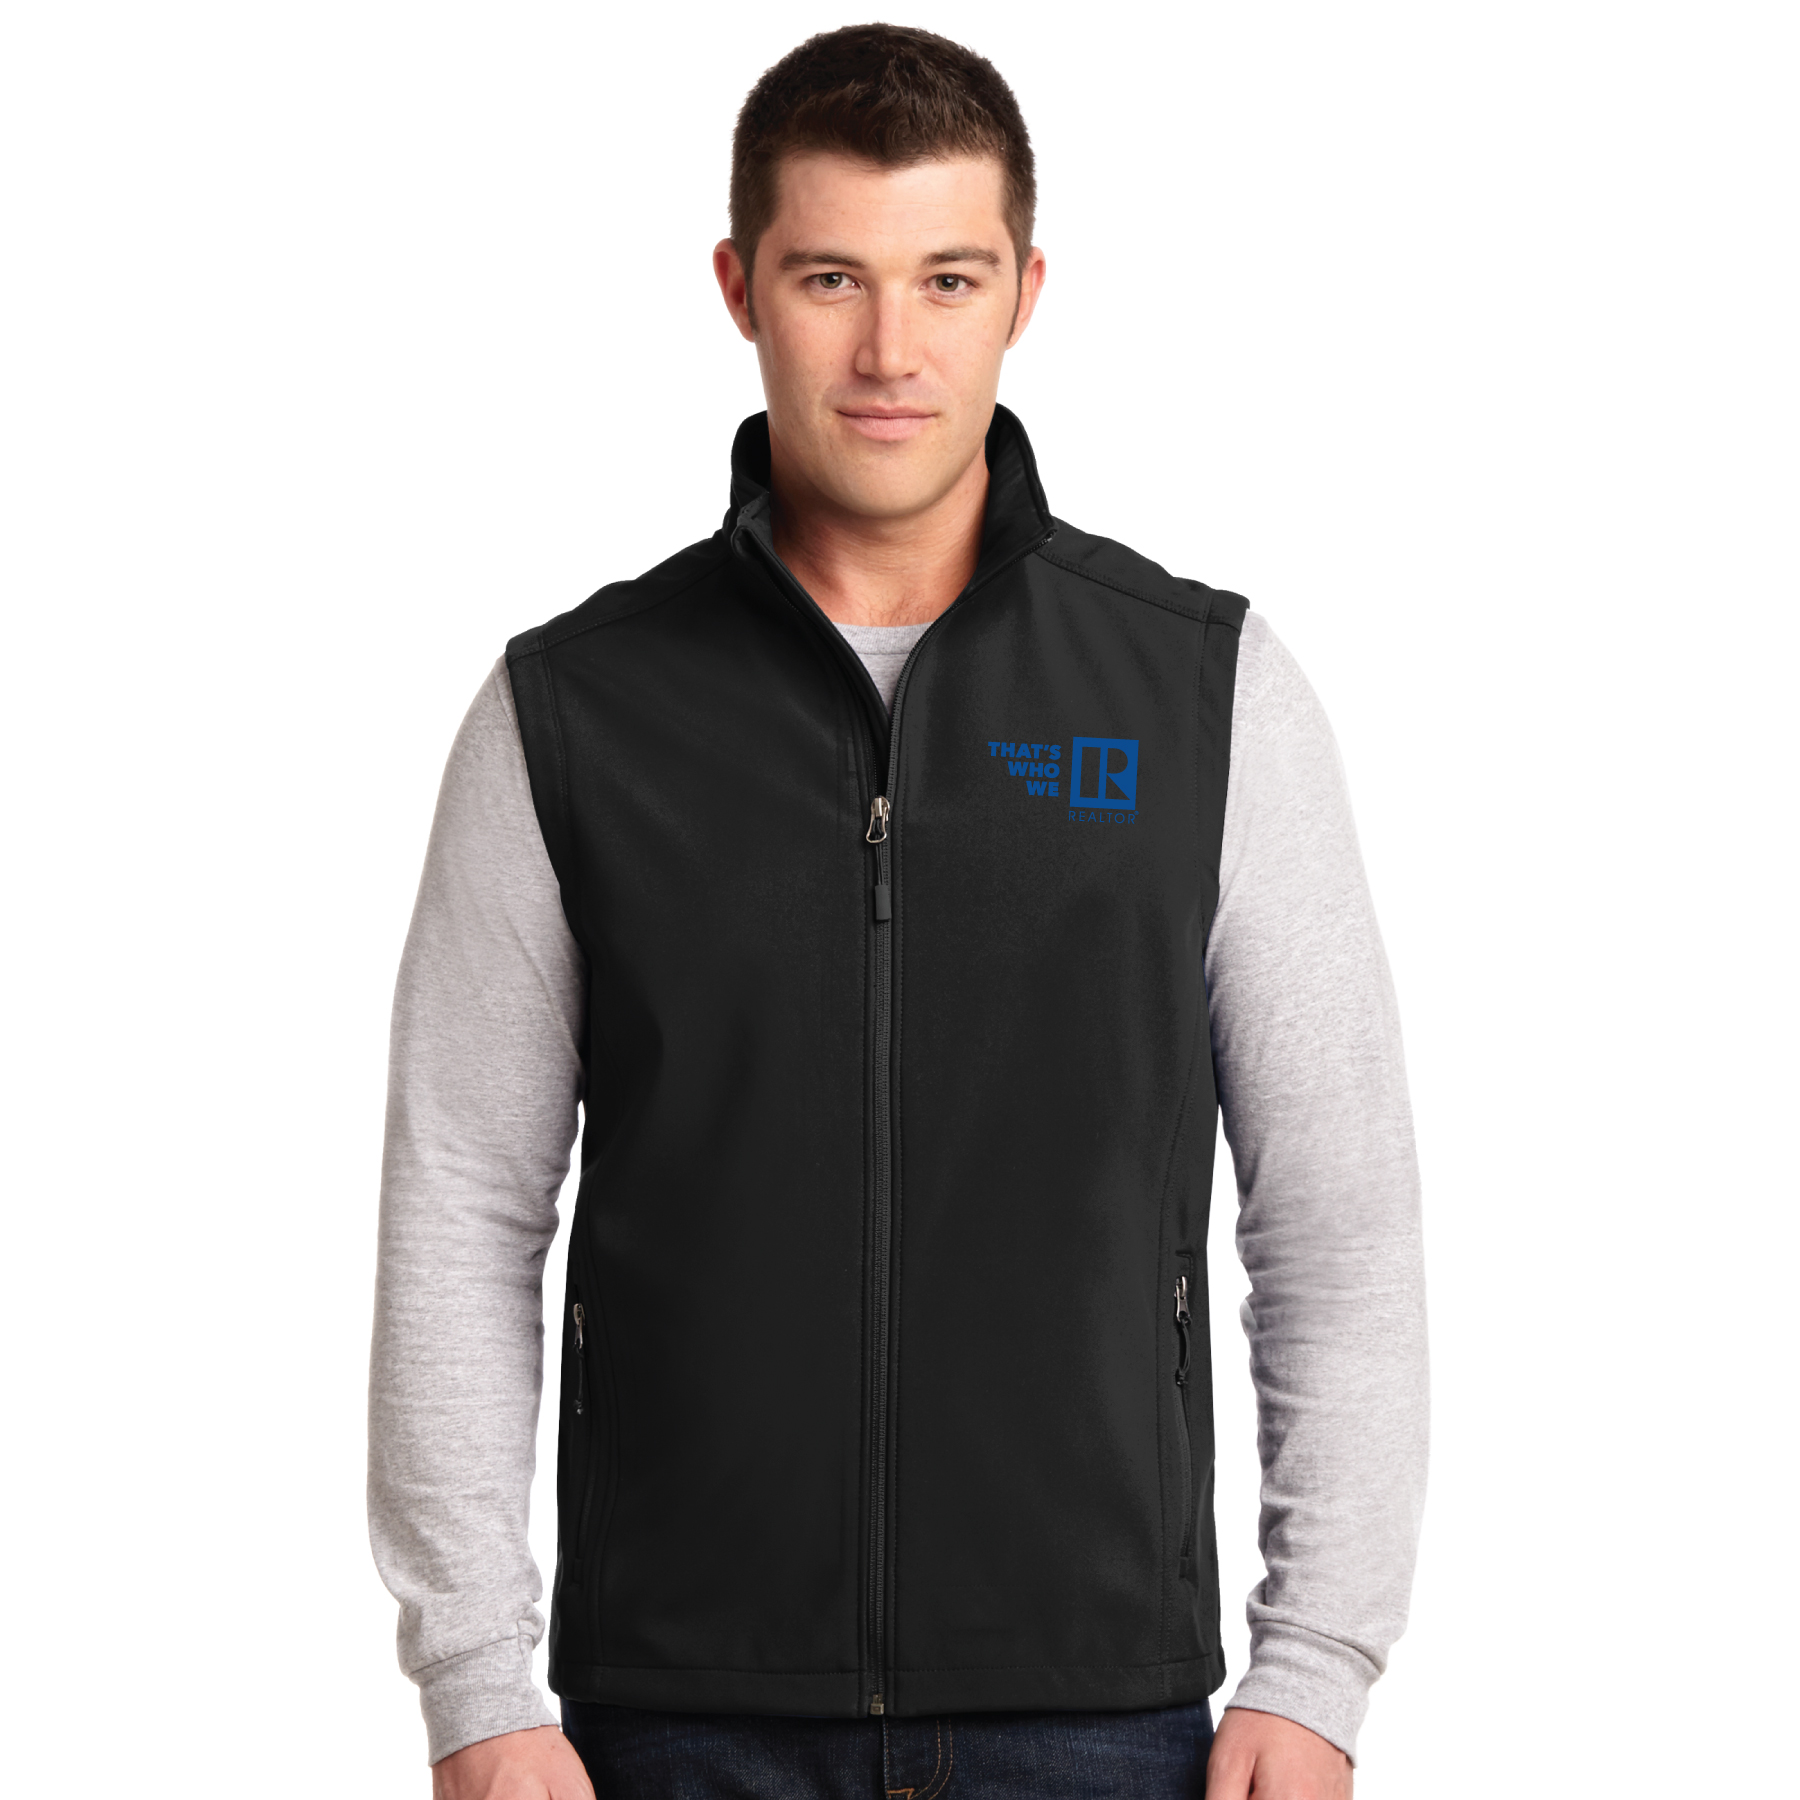 """That's Who We R"" Men's Core Soft Shell Vest Twwr,Thats,Whos,Wes,Ares,soft, shells, vests, mens"